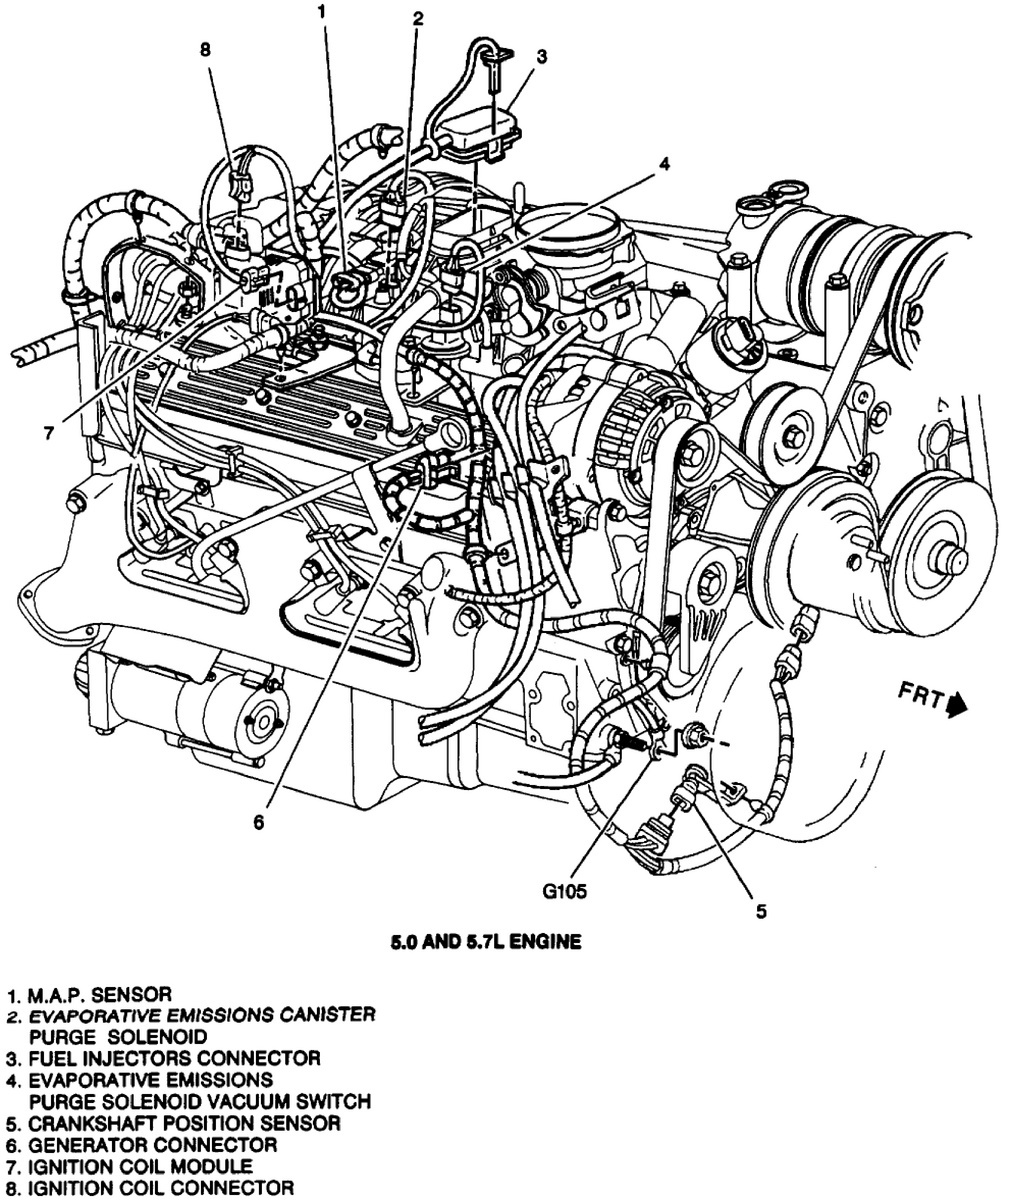 2002 Silverado 1500 Engine Diagram Complete Wiring Diagrams Chevy Z71 Fuse 97 Suburban Enthusiast U2022 Rh Rasalibre Co Parts Hd